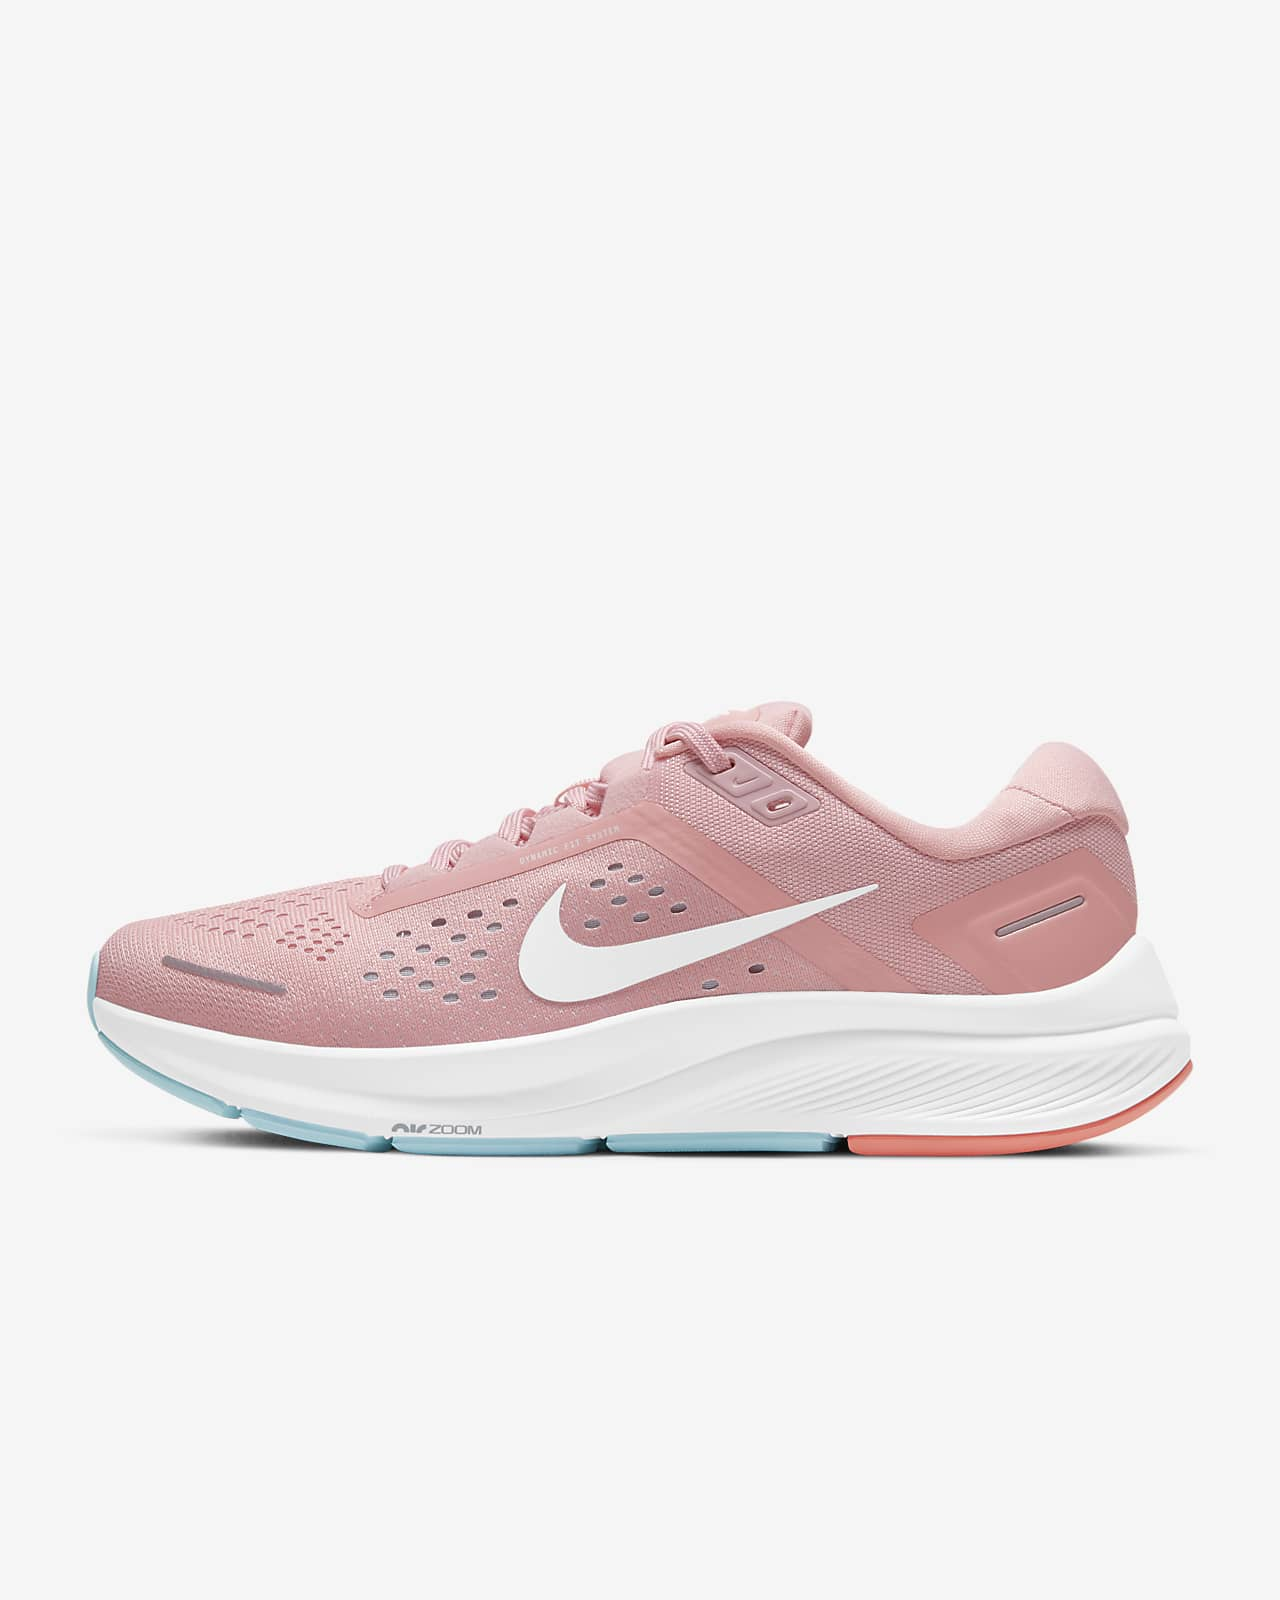 Sapatilhas de running Nike Air Zoom Structure 23 para mulher